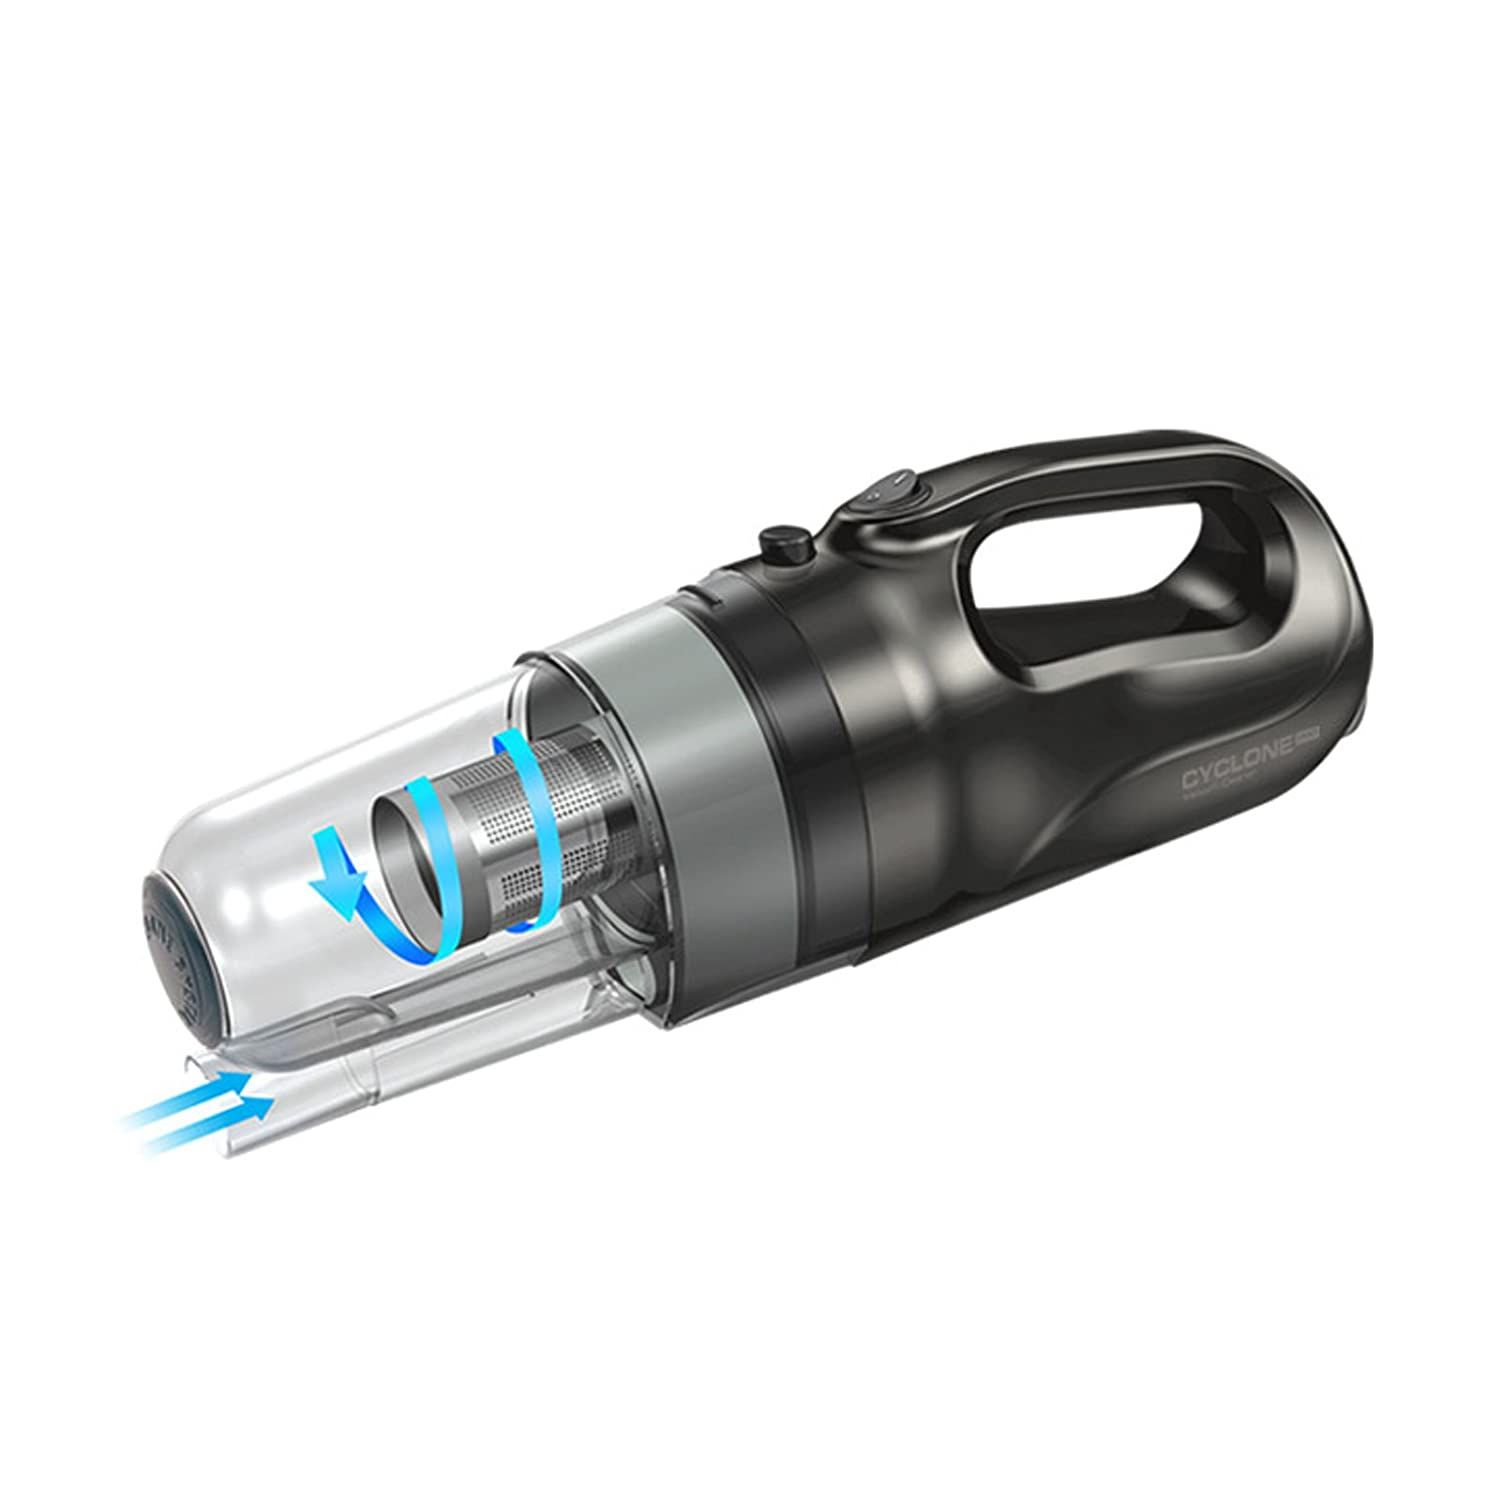 FOURING Pro Cyclone Suction Car Vacuum Cleaner 150W Power